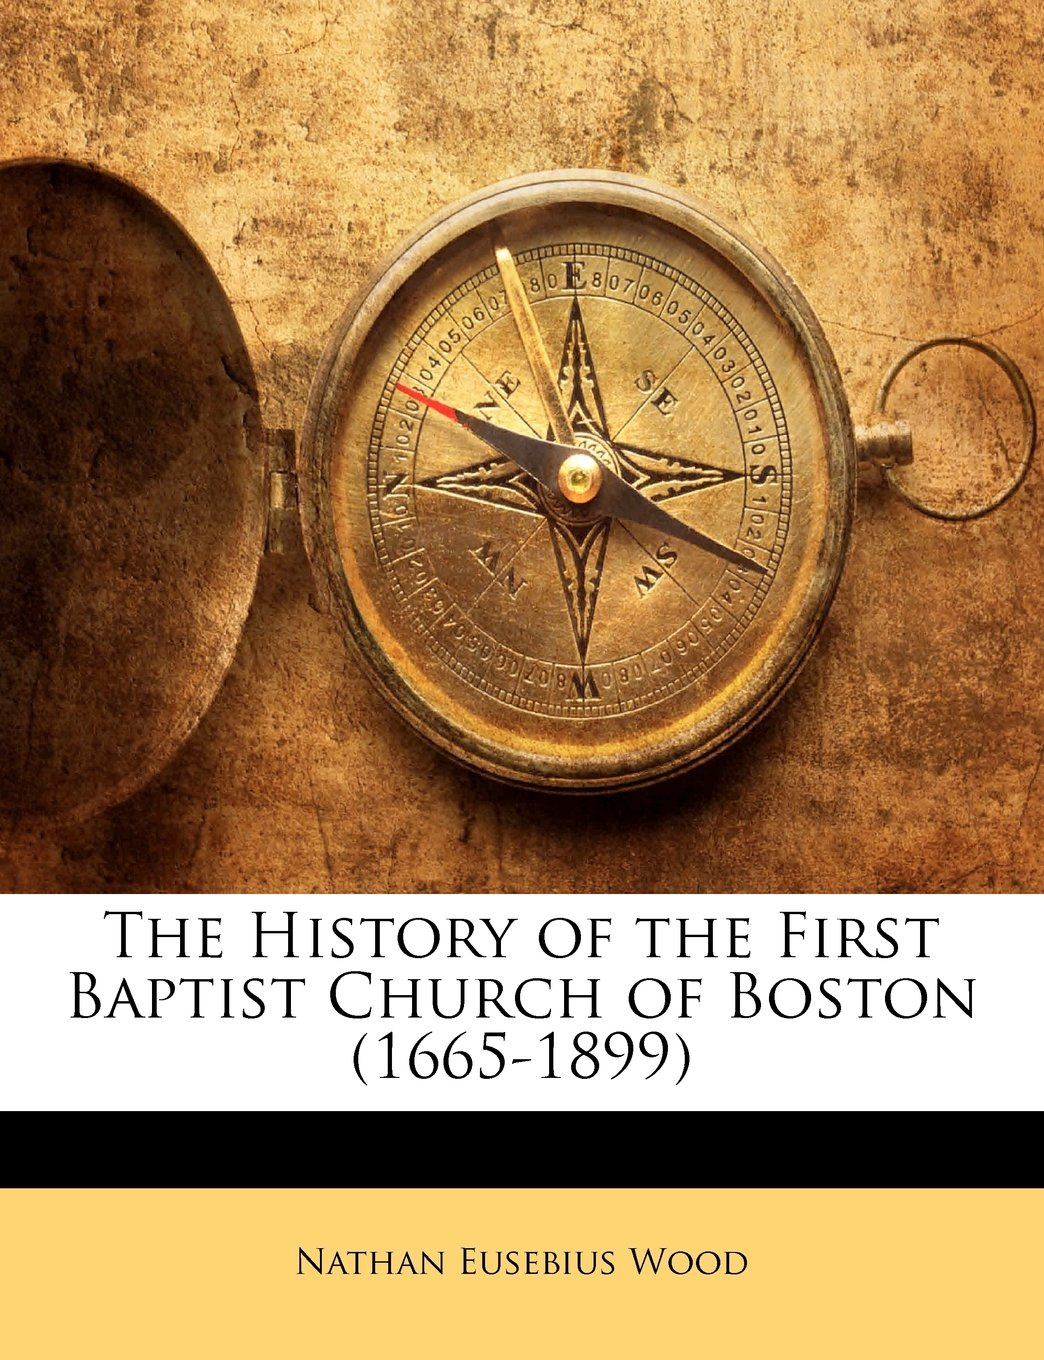 Read Online The History of the First Baptist Church of Boston (1665-1899) pdf epub